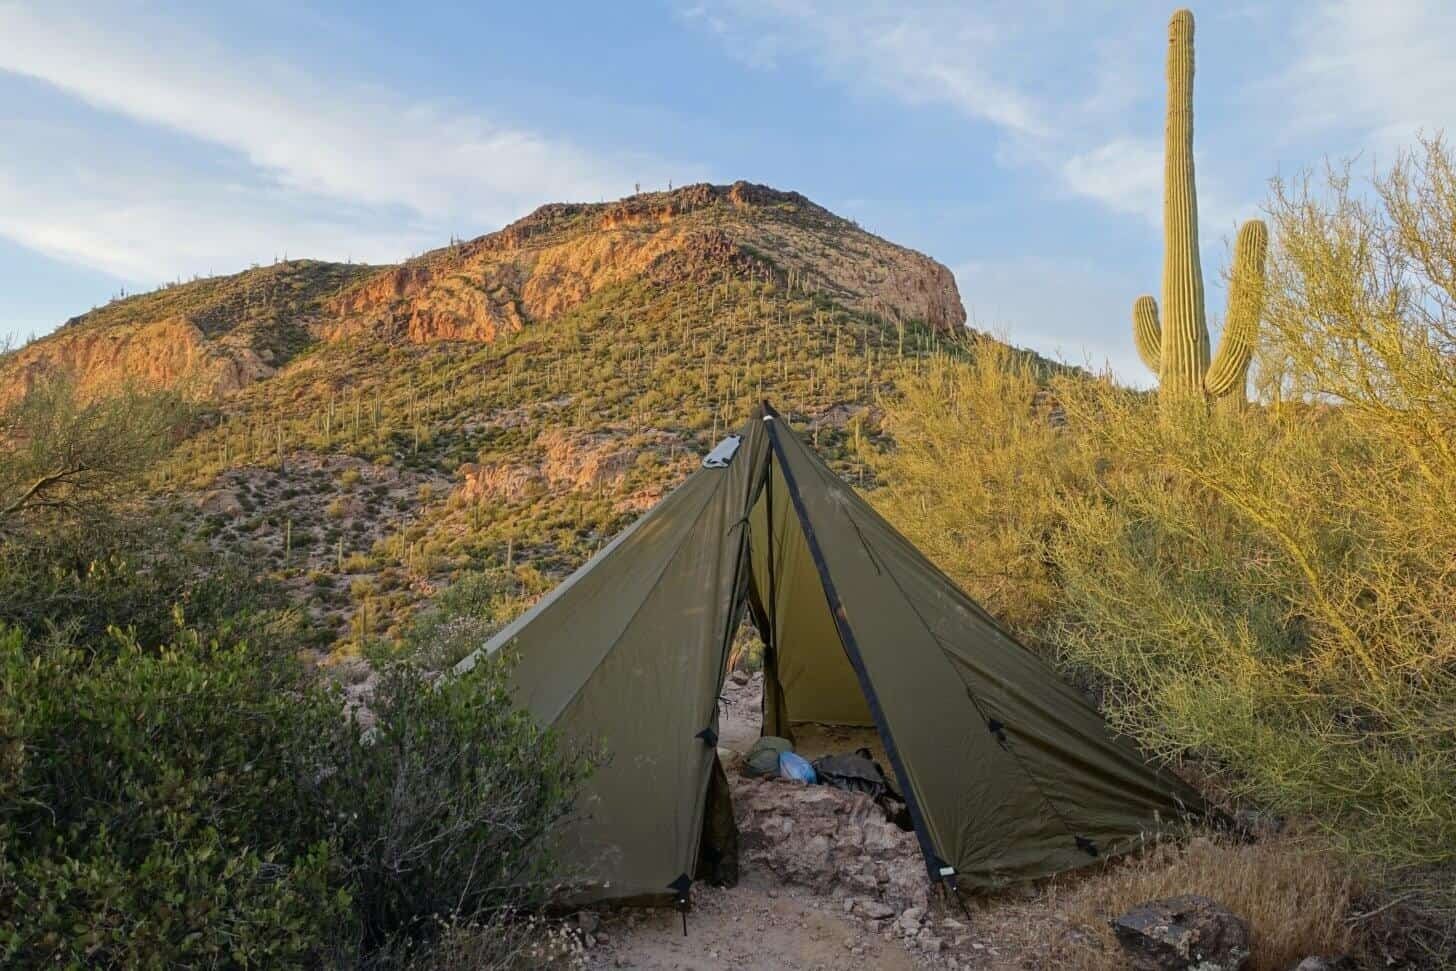 so-redcliff-1: The Seek Outside Redcliff shelter, seen here in Arizona's Superstition Wilderness.